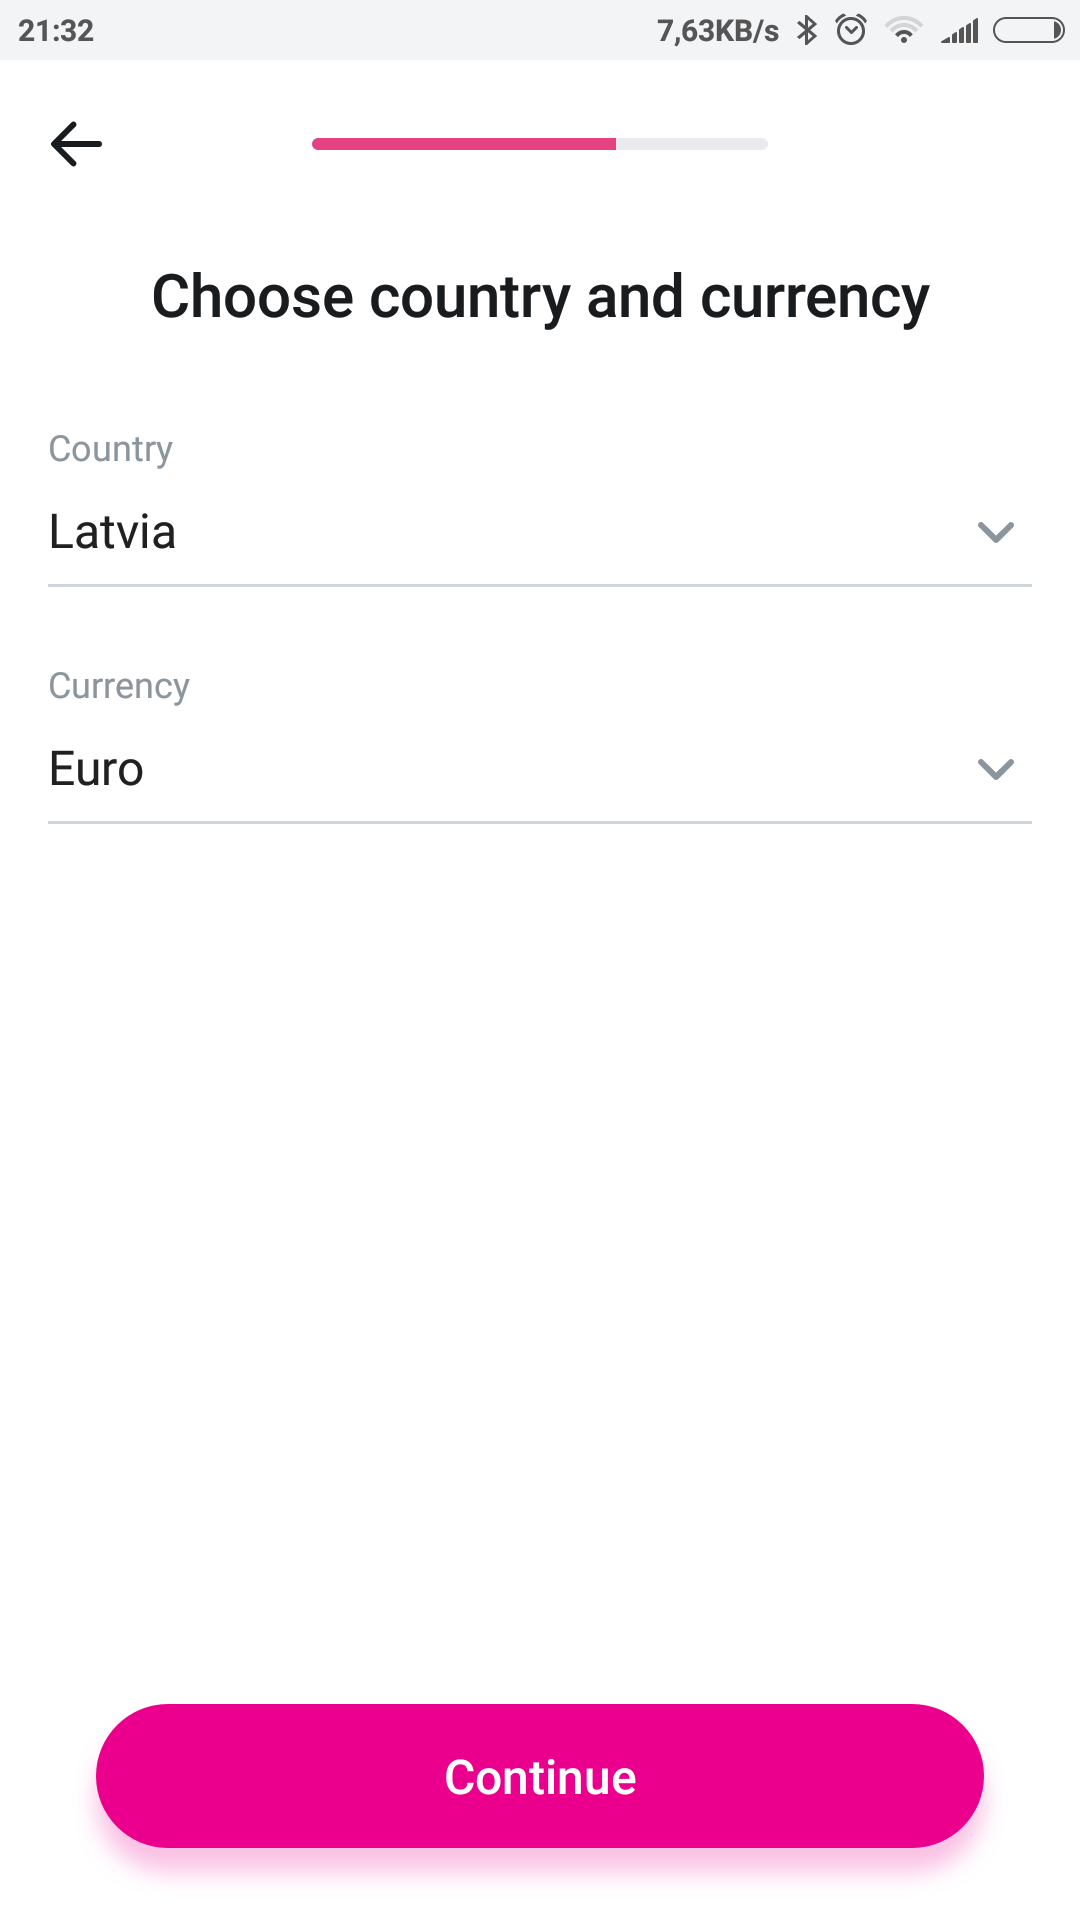 Revolut - choose country and currency